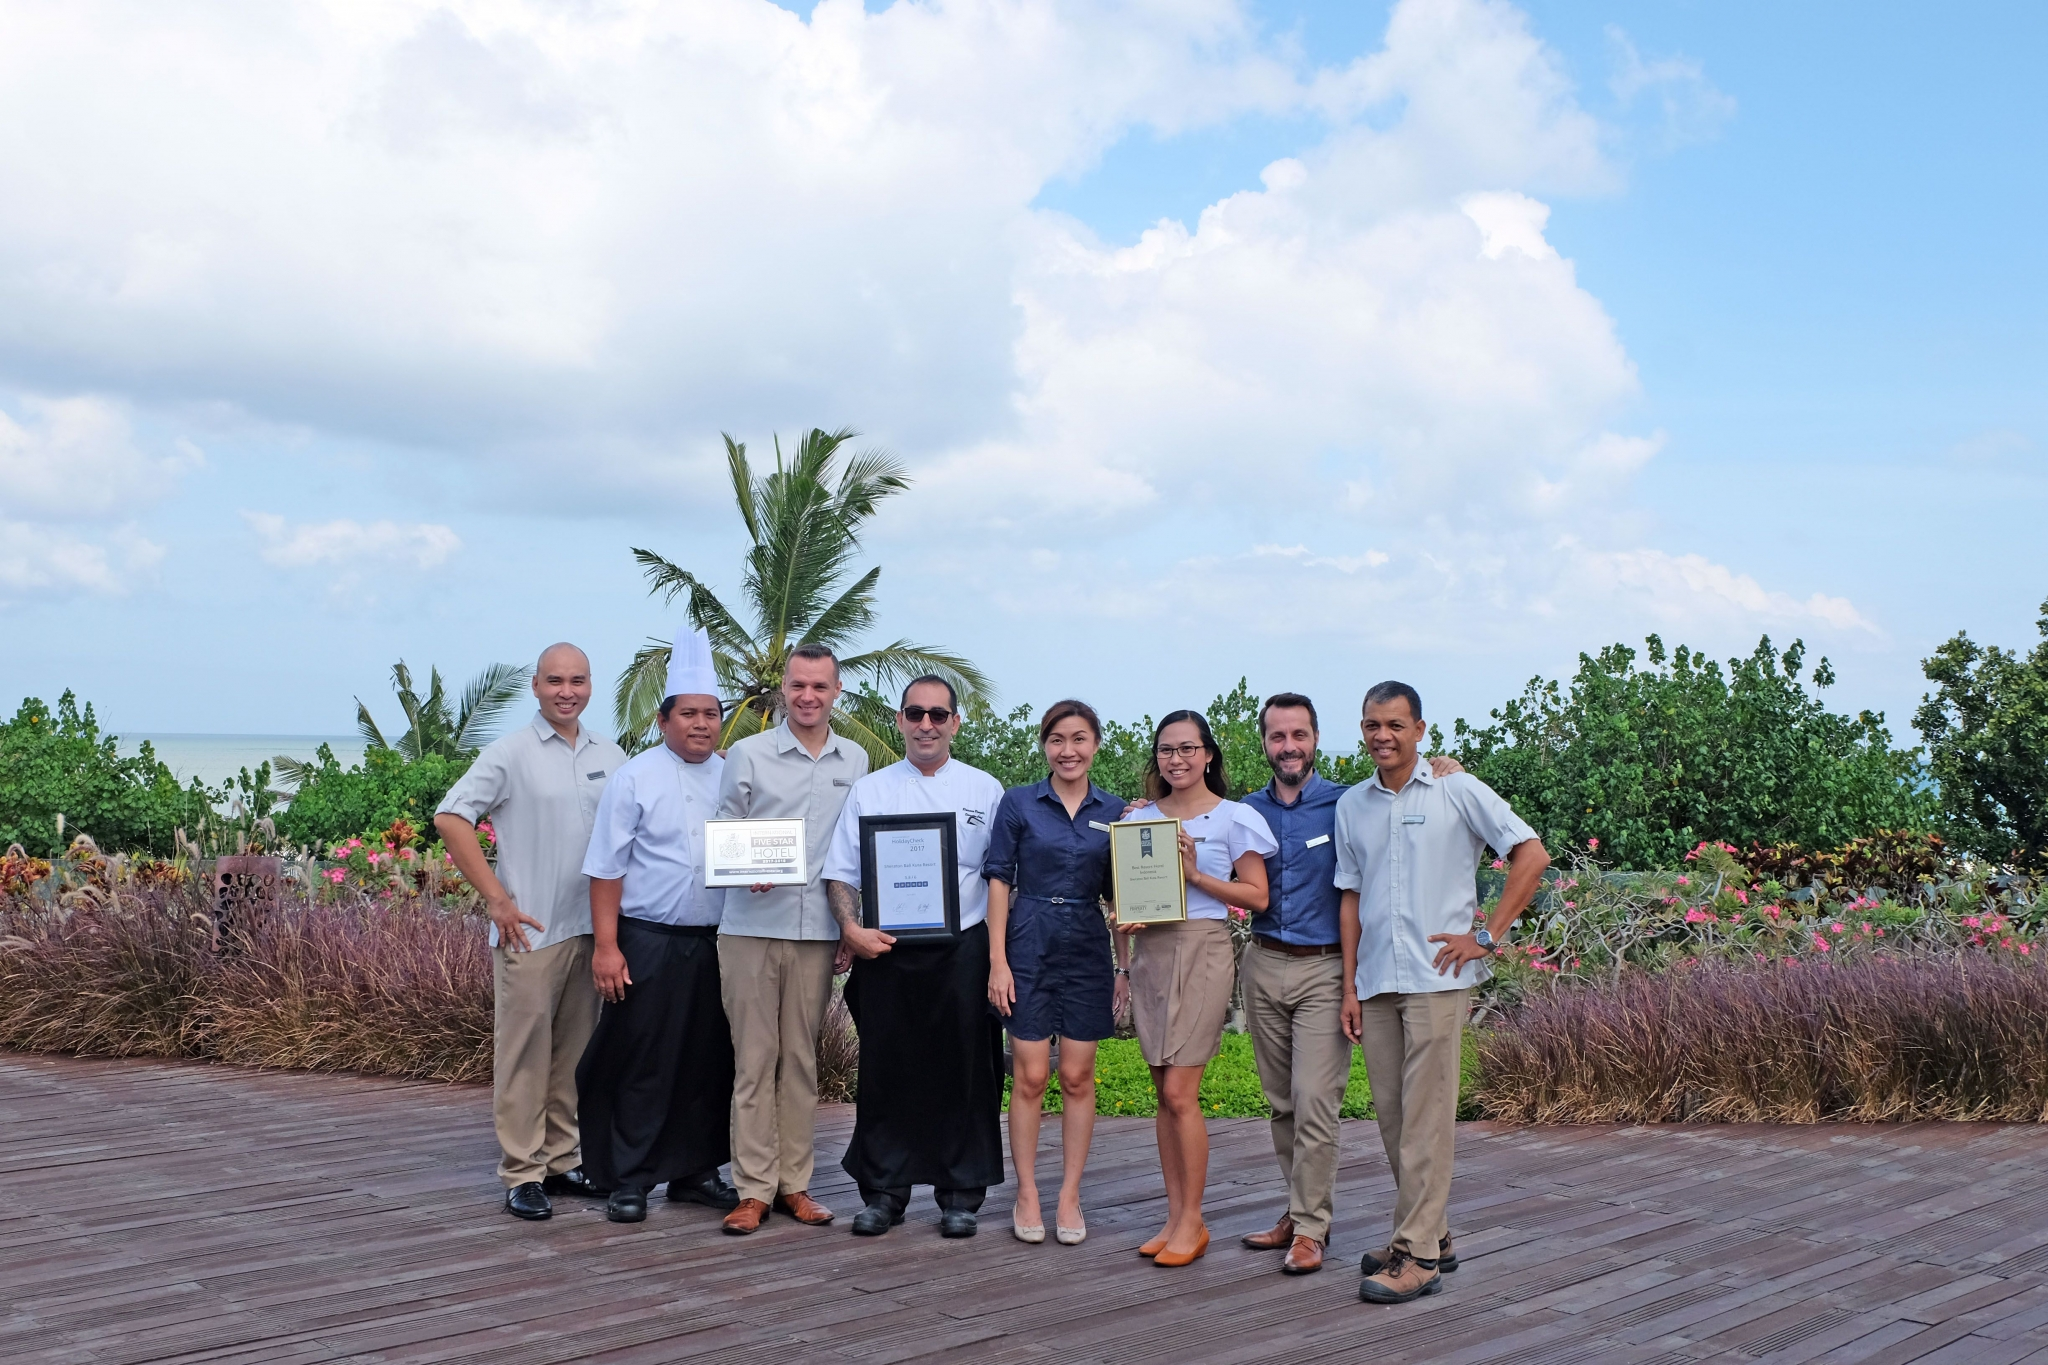 The Management team of Sheraton Bali Kuta Resort. General Manager Dario Orsini